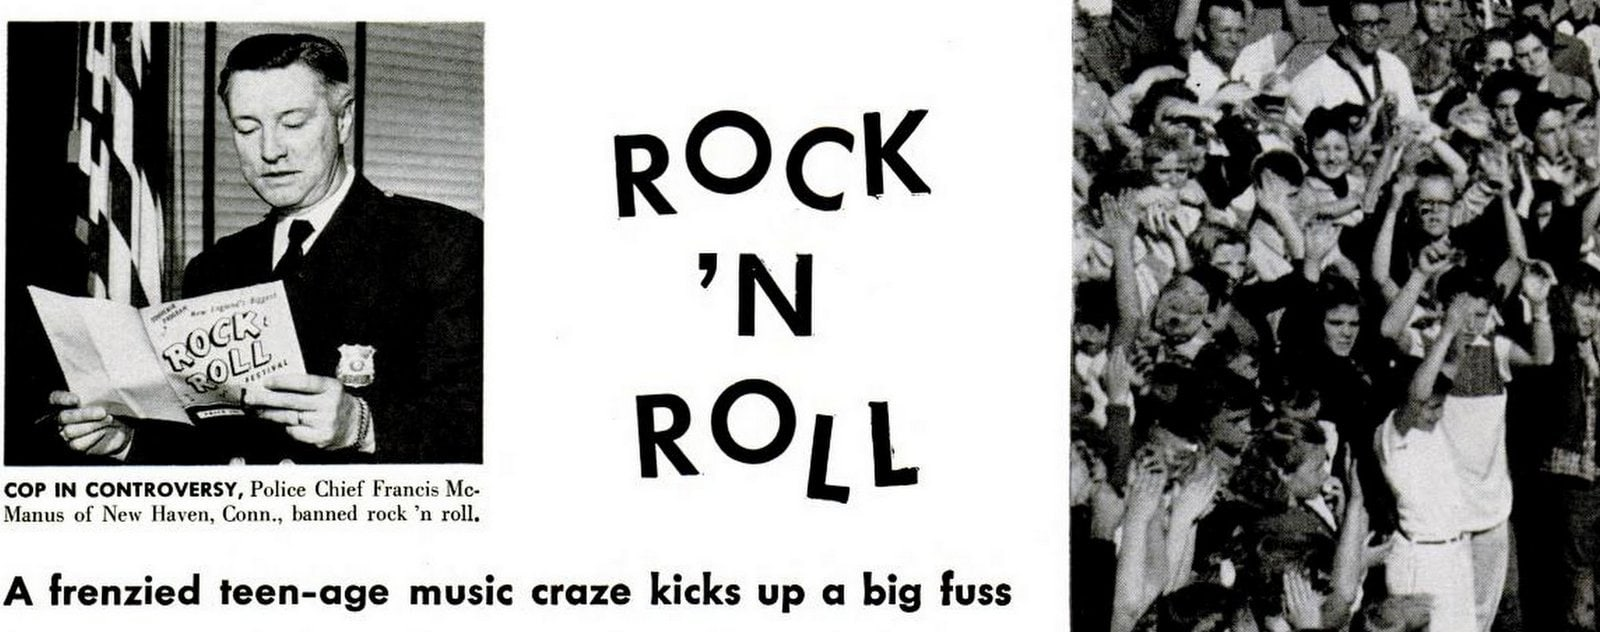 Did they really ban rock 'n' roll music - 1955